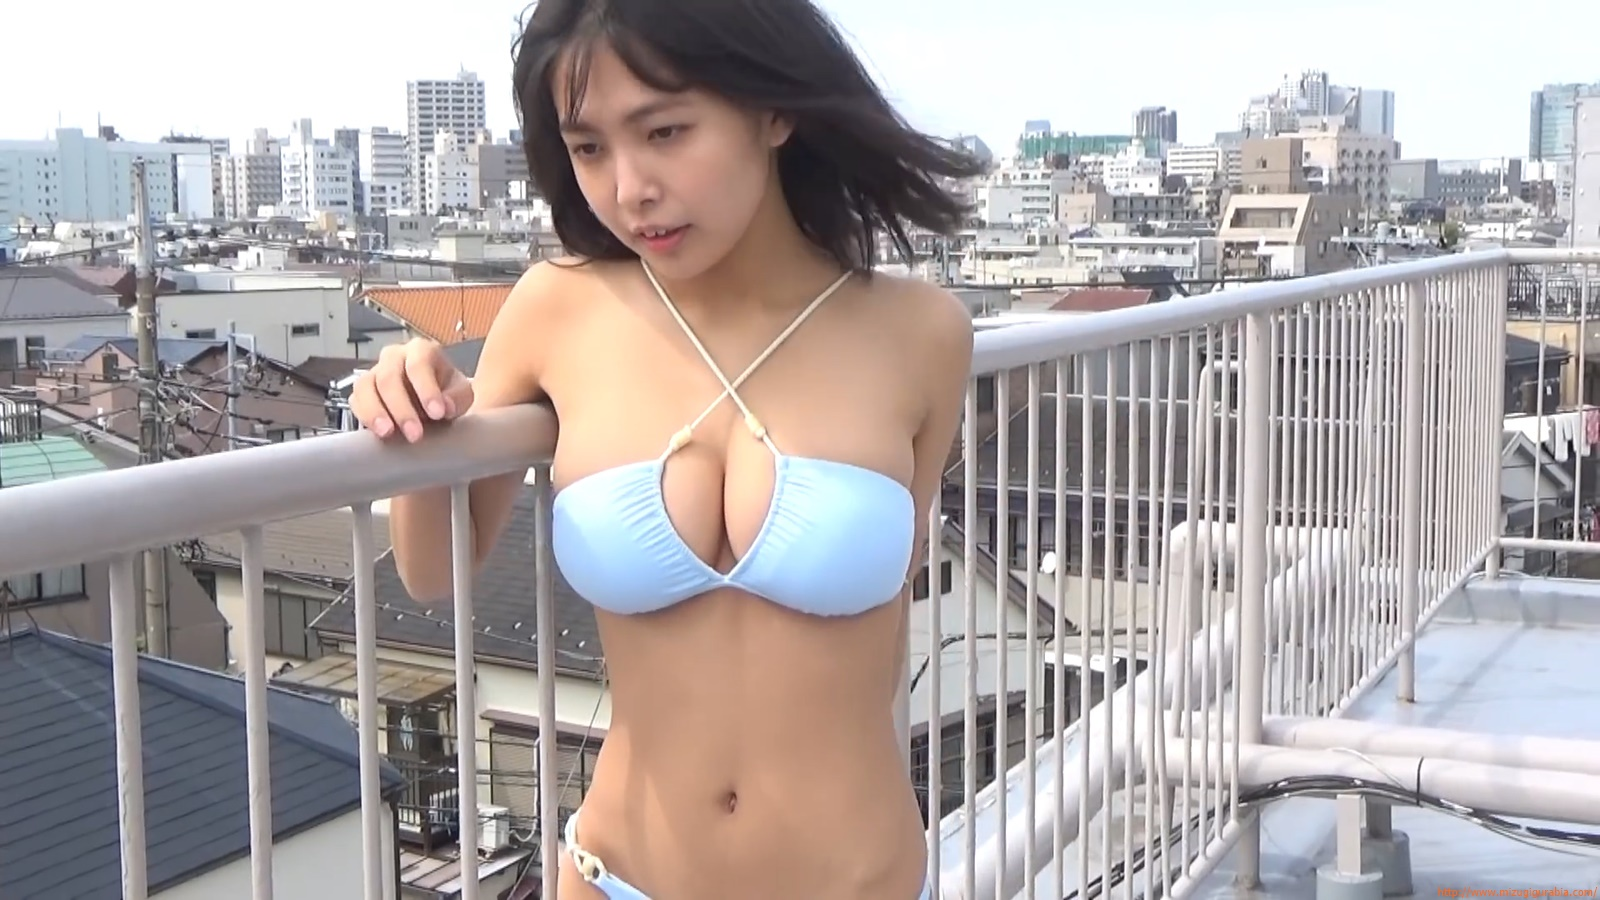 The gravure that makes all Japan cheer up Rio Teramoto 109